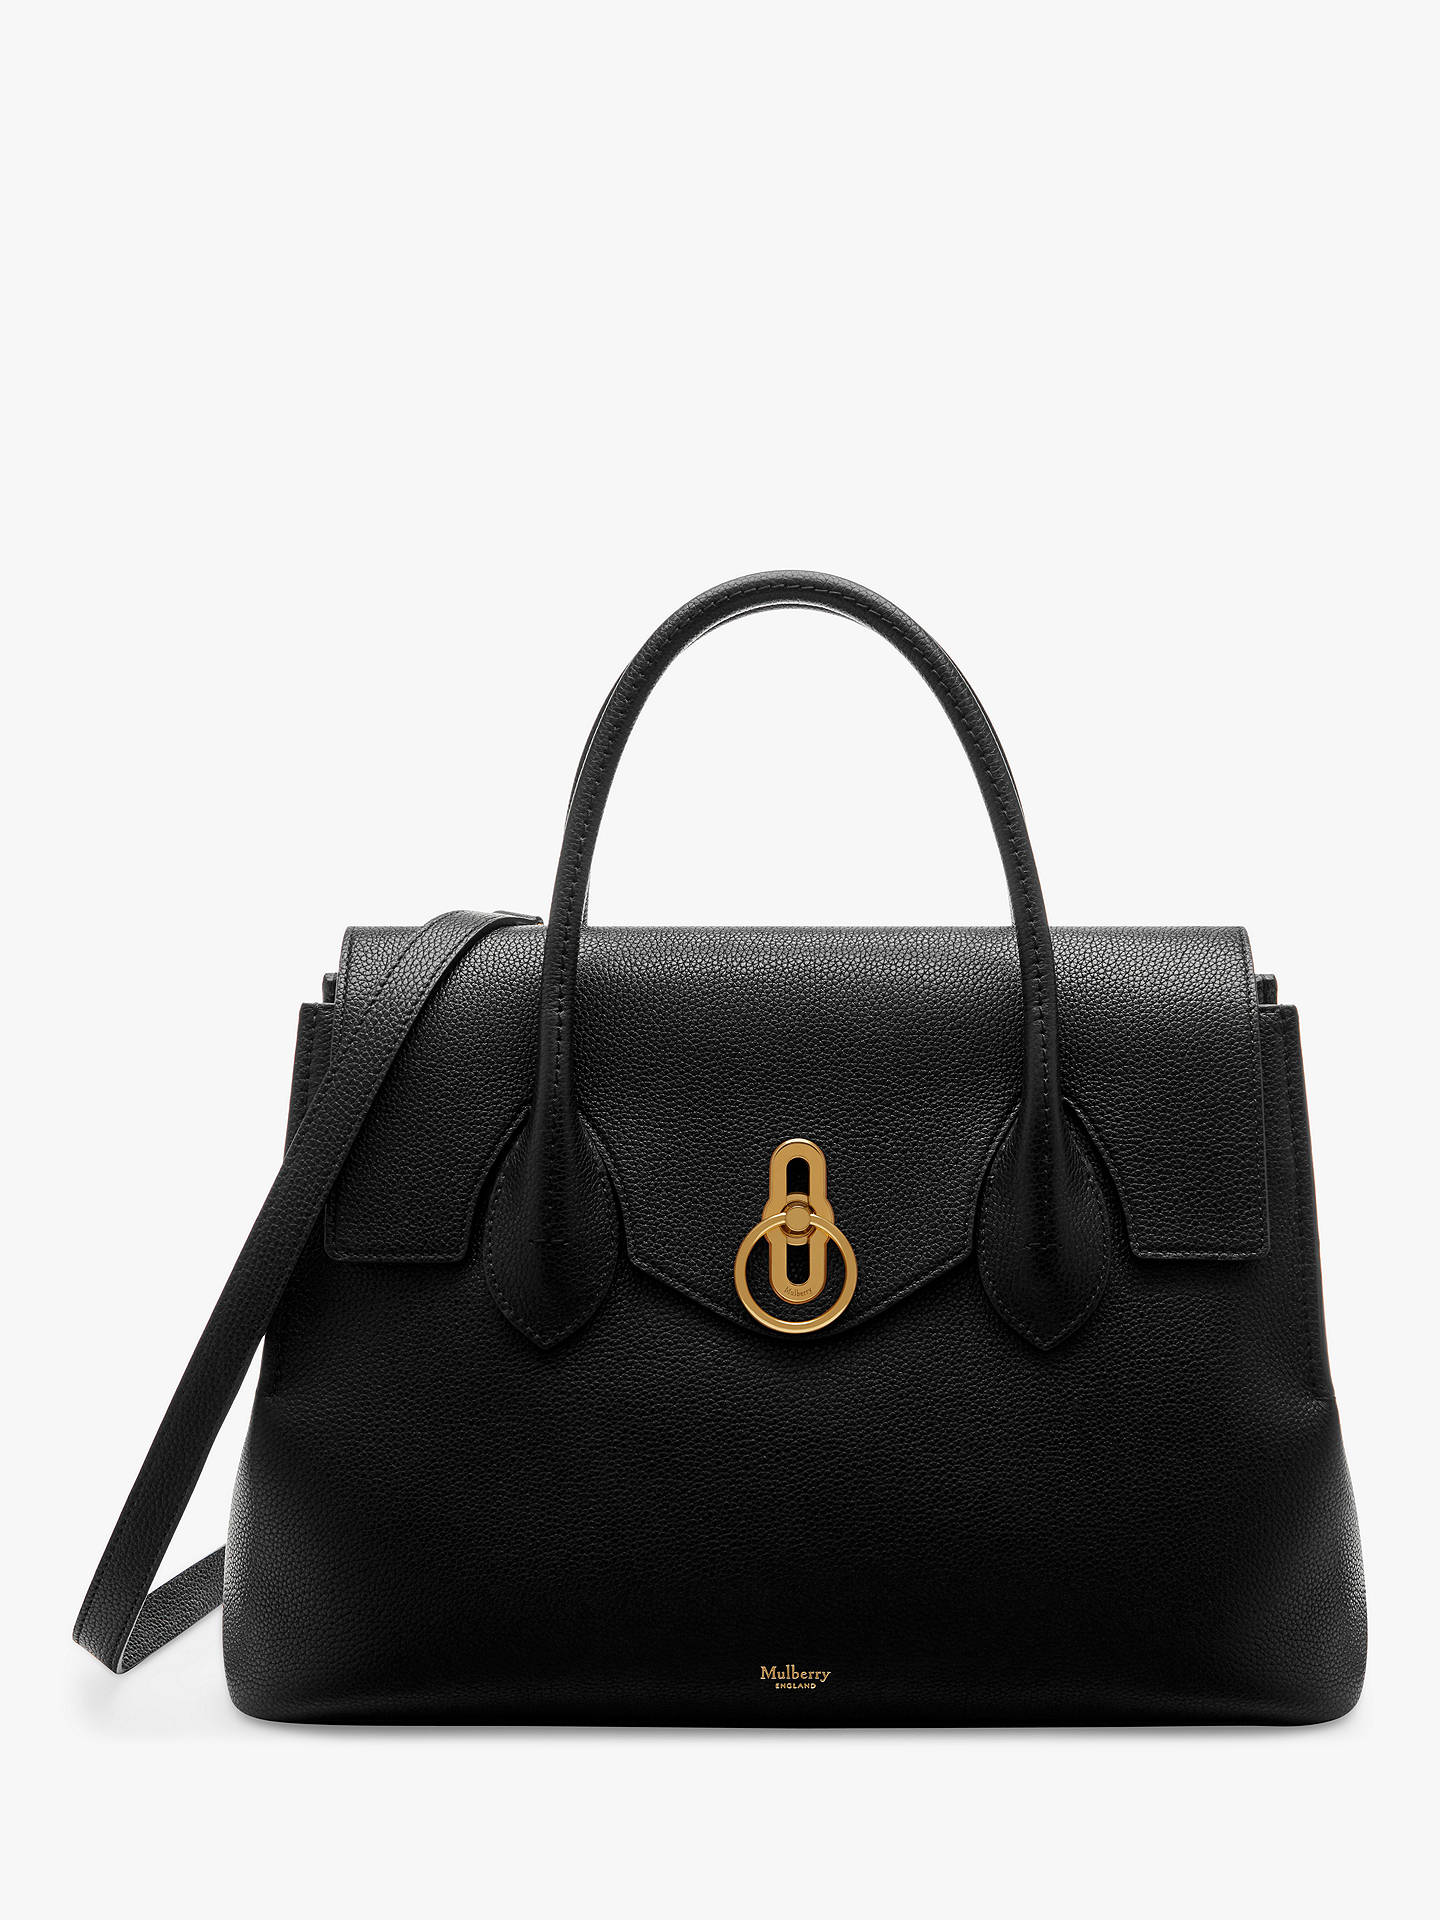 Mulberry Seaton Classic Grain Leather Handbag at John Lewis   Partners a5ff6ad427635